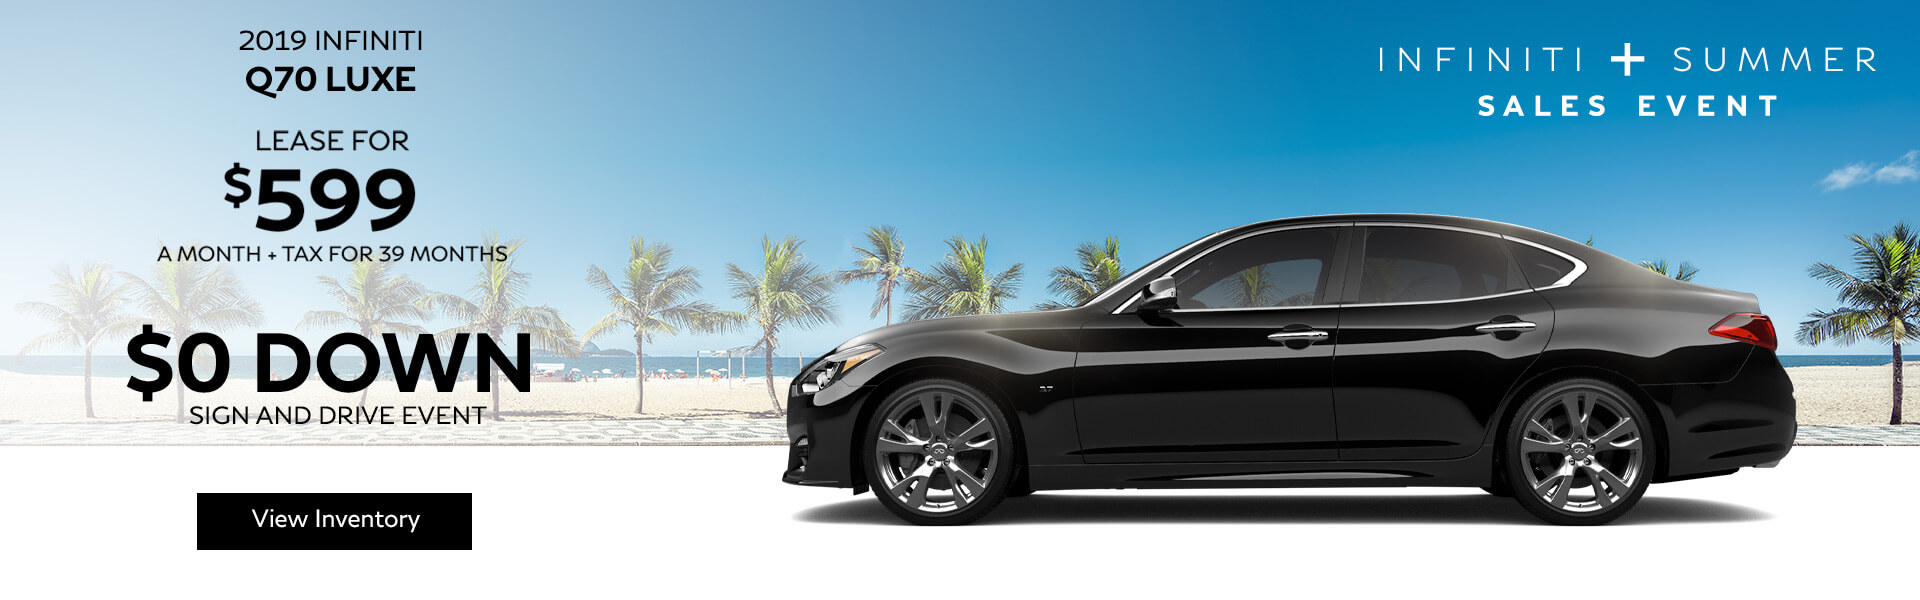 Q70 LUXE - Lease for $599